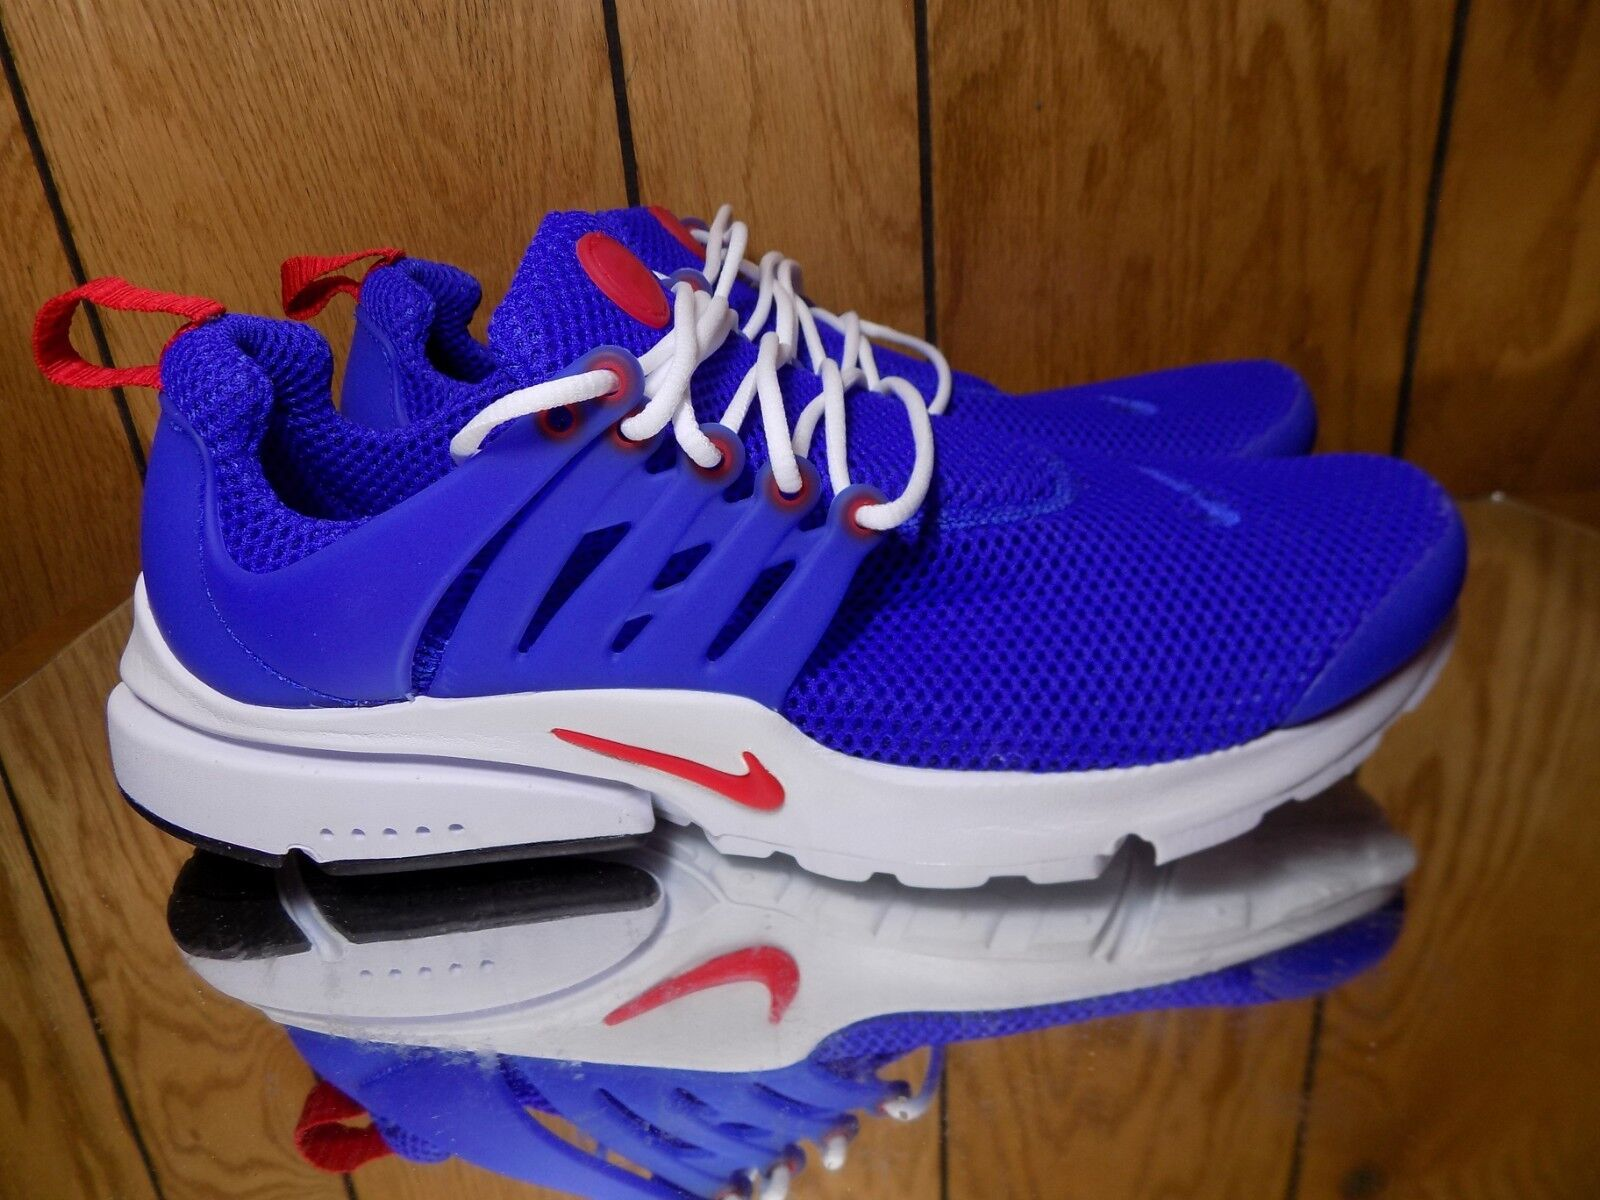 New Nike Men's Air Presto Essential shoes (848187-408) Bright blueee  White-Red s